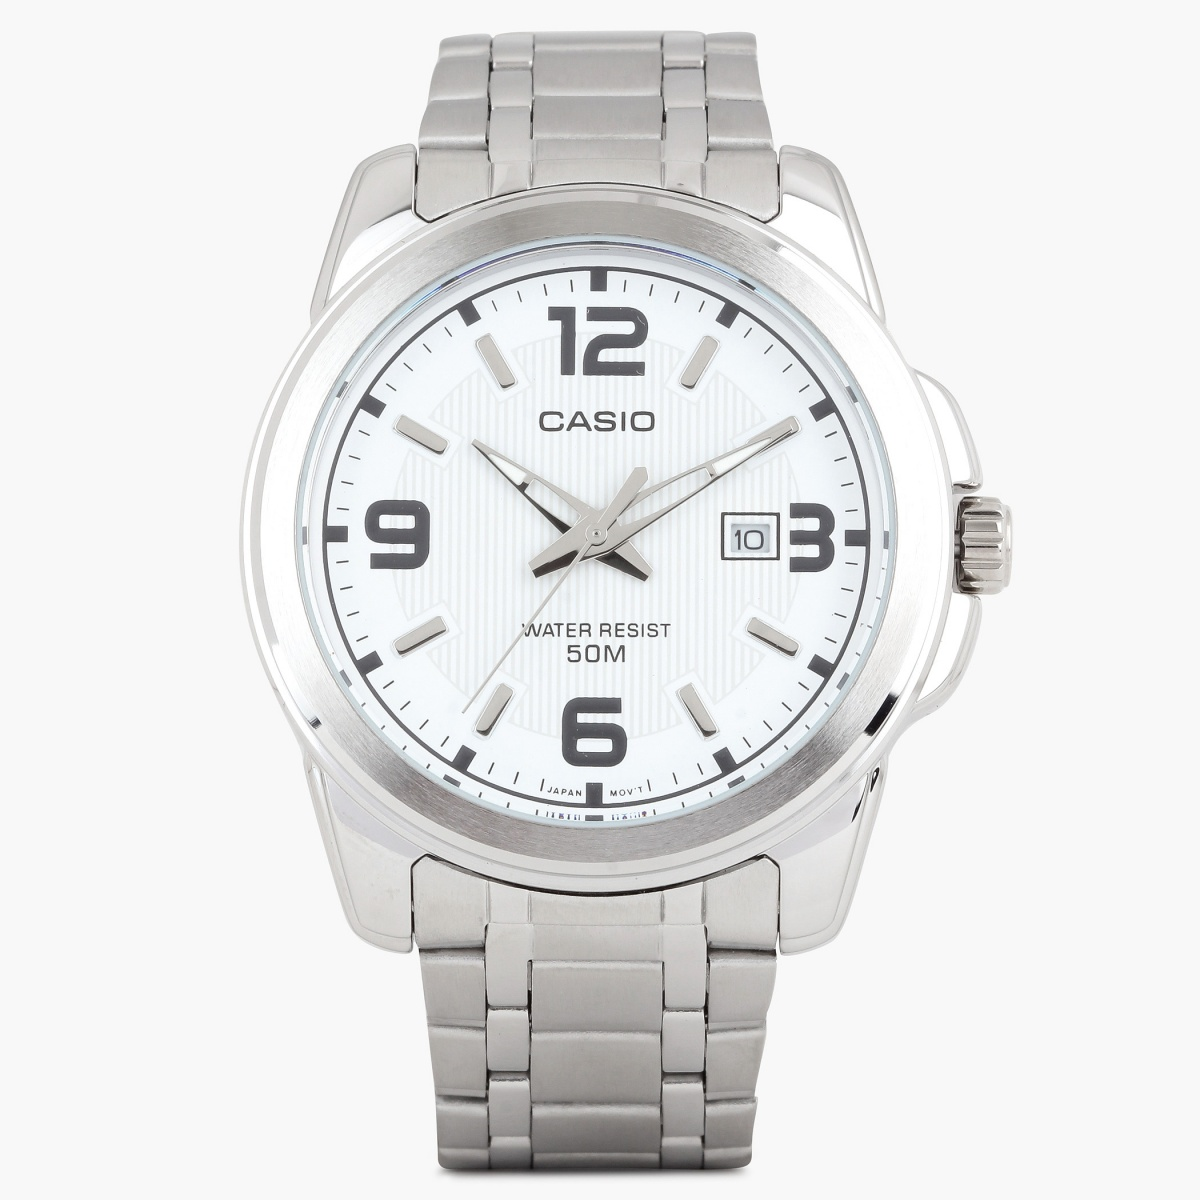 CASIO Enticer-Mens Analog Watch A552